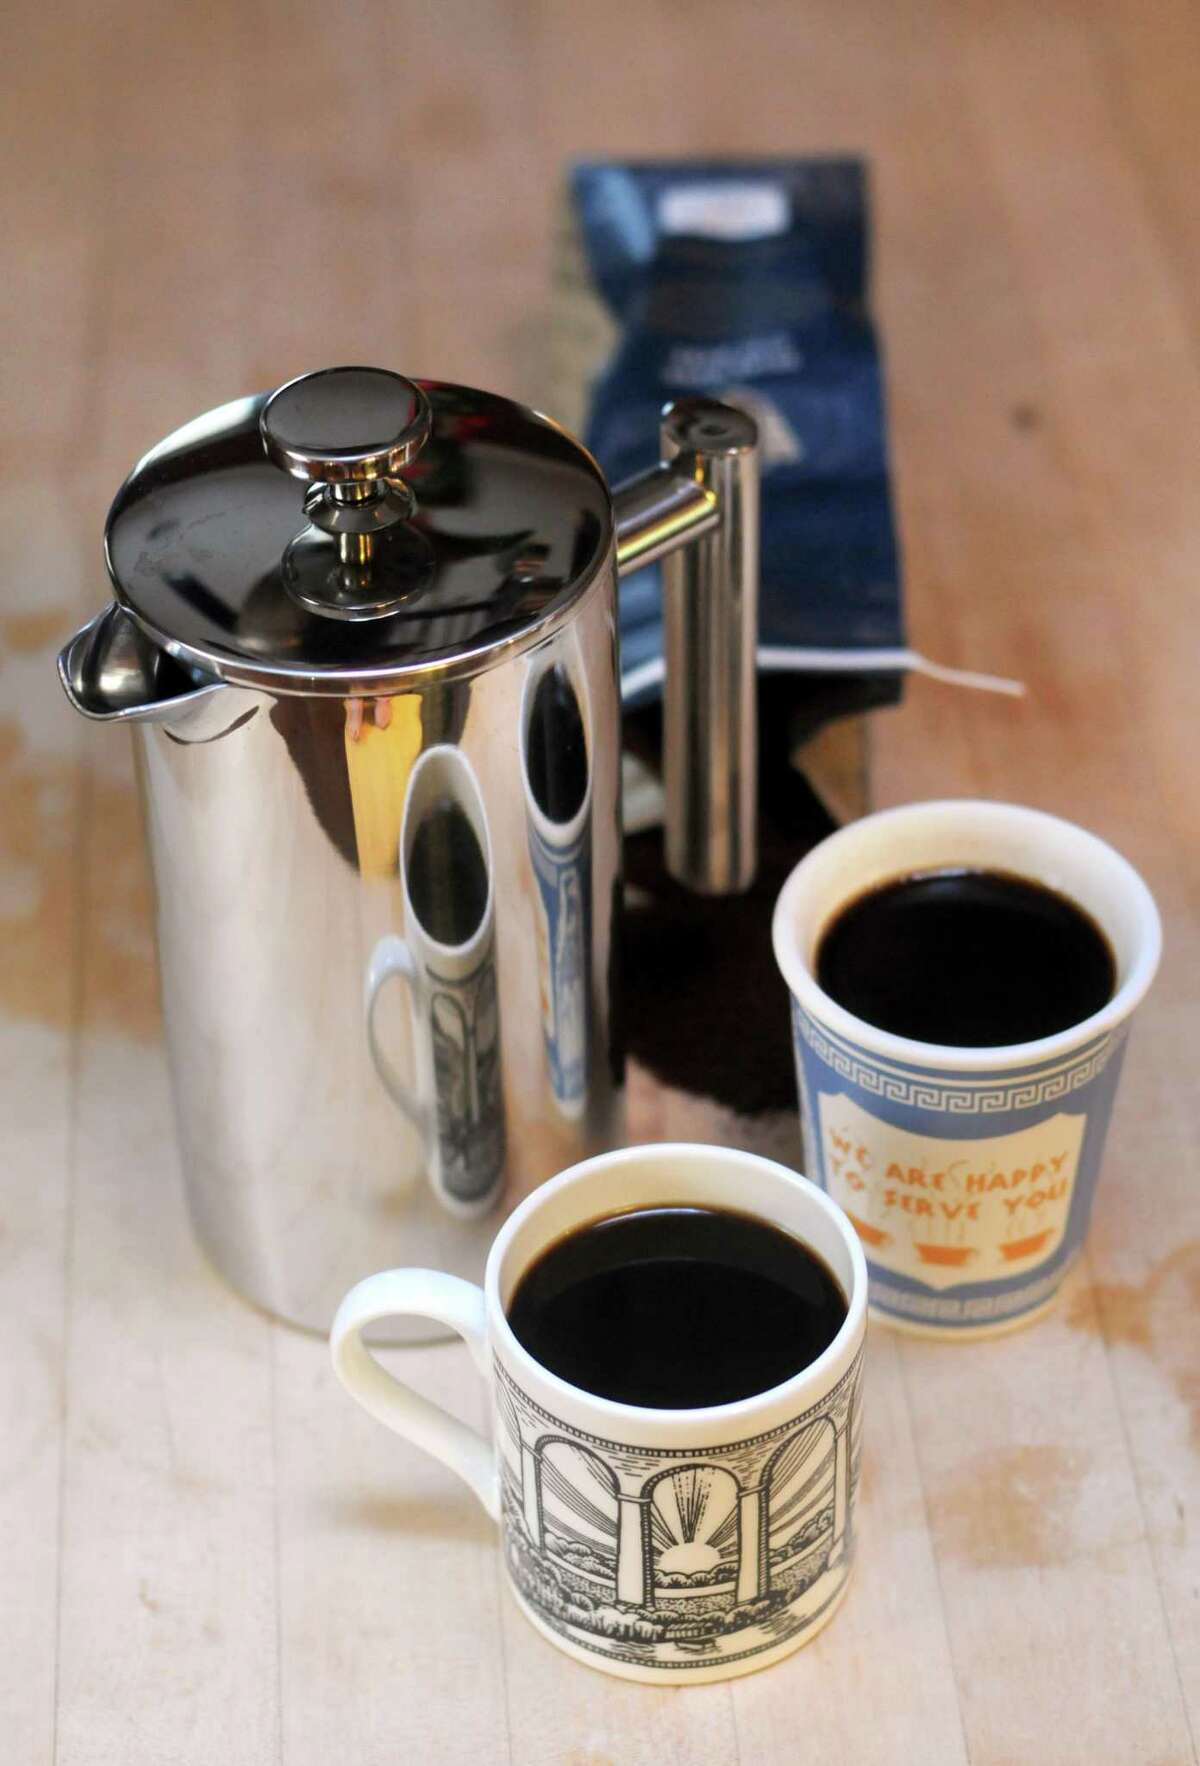 A double-walled, stainless-steel French press coffee maker is nearly indestructible and will keep your coffee hot much longer than glass models.